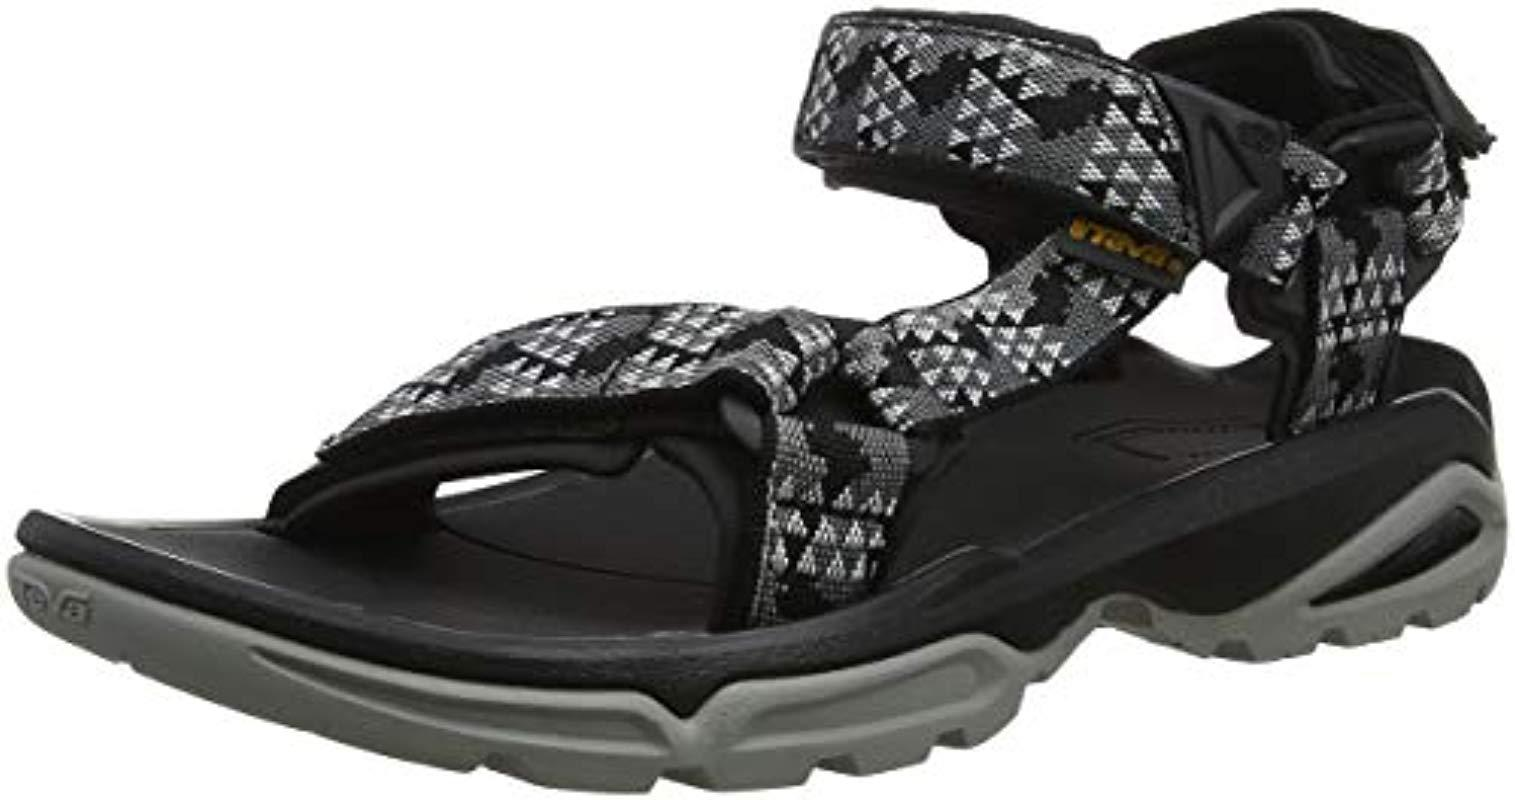 61f0411692ef Teva - Black M Terra Fi 4 Open Toe Sandals for Men - Lyst. View fullscreen